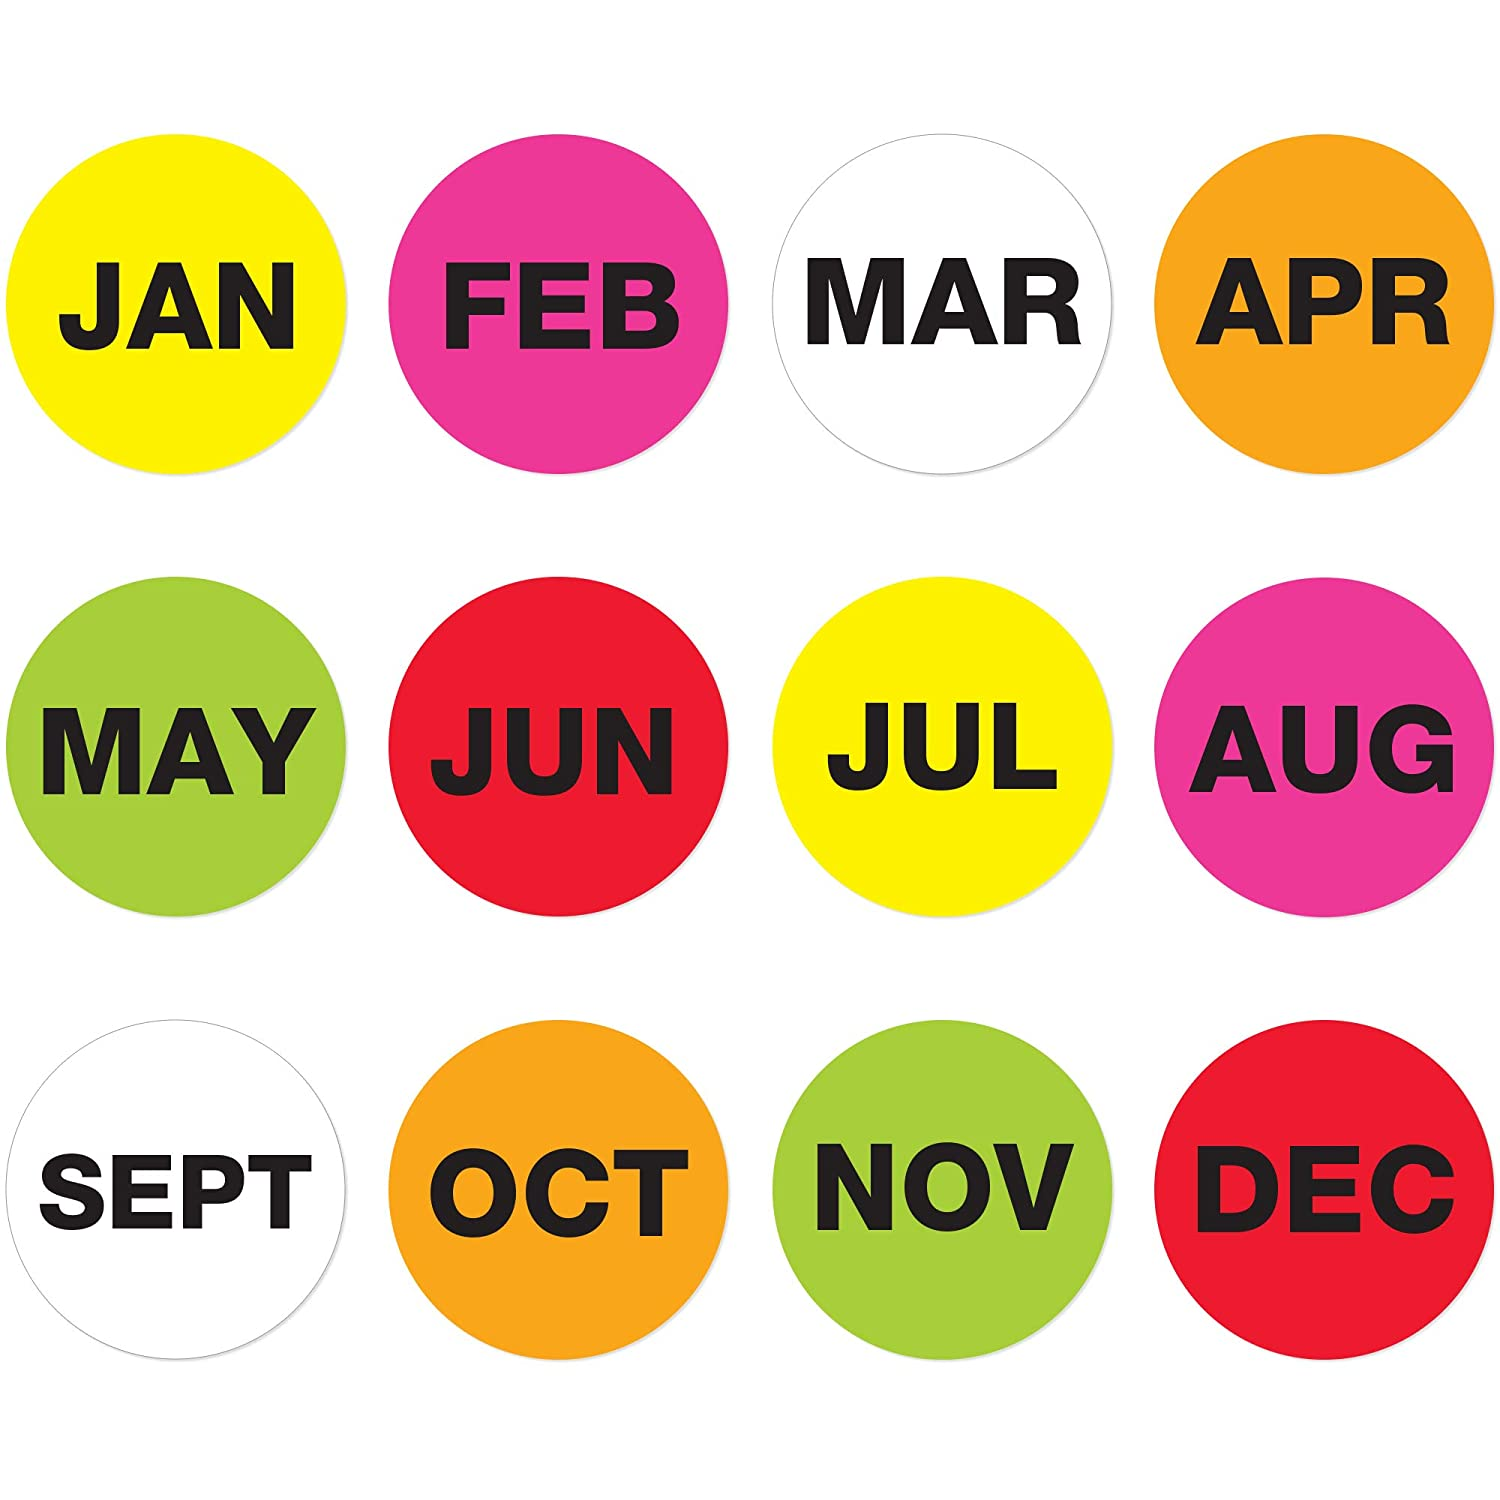 1 Circle 500//Roll Tape Logic Months of The Year Labels,APR Fluorescent Orange